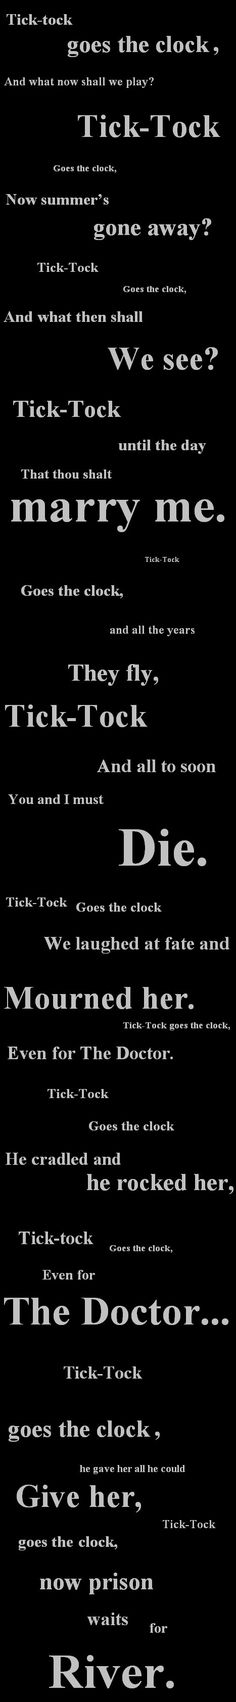 full tick tock lyrics - If I have kids I'm going to sing them to sleep with this and when they ask me what it means I will get to tell them the most detailed awesome bed time story.